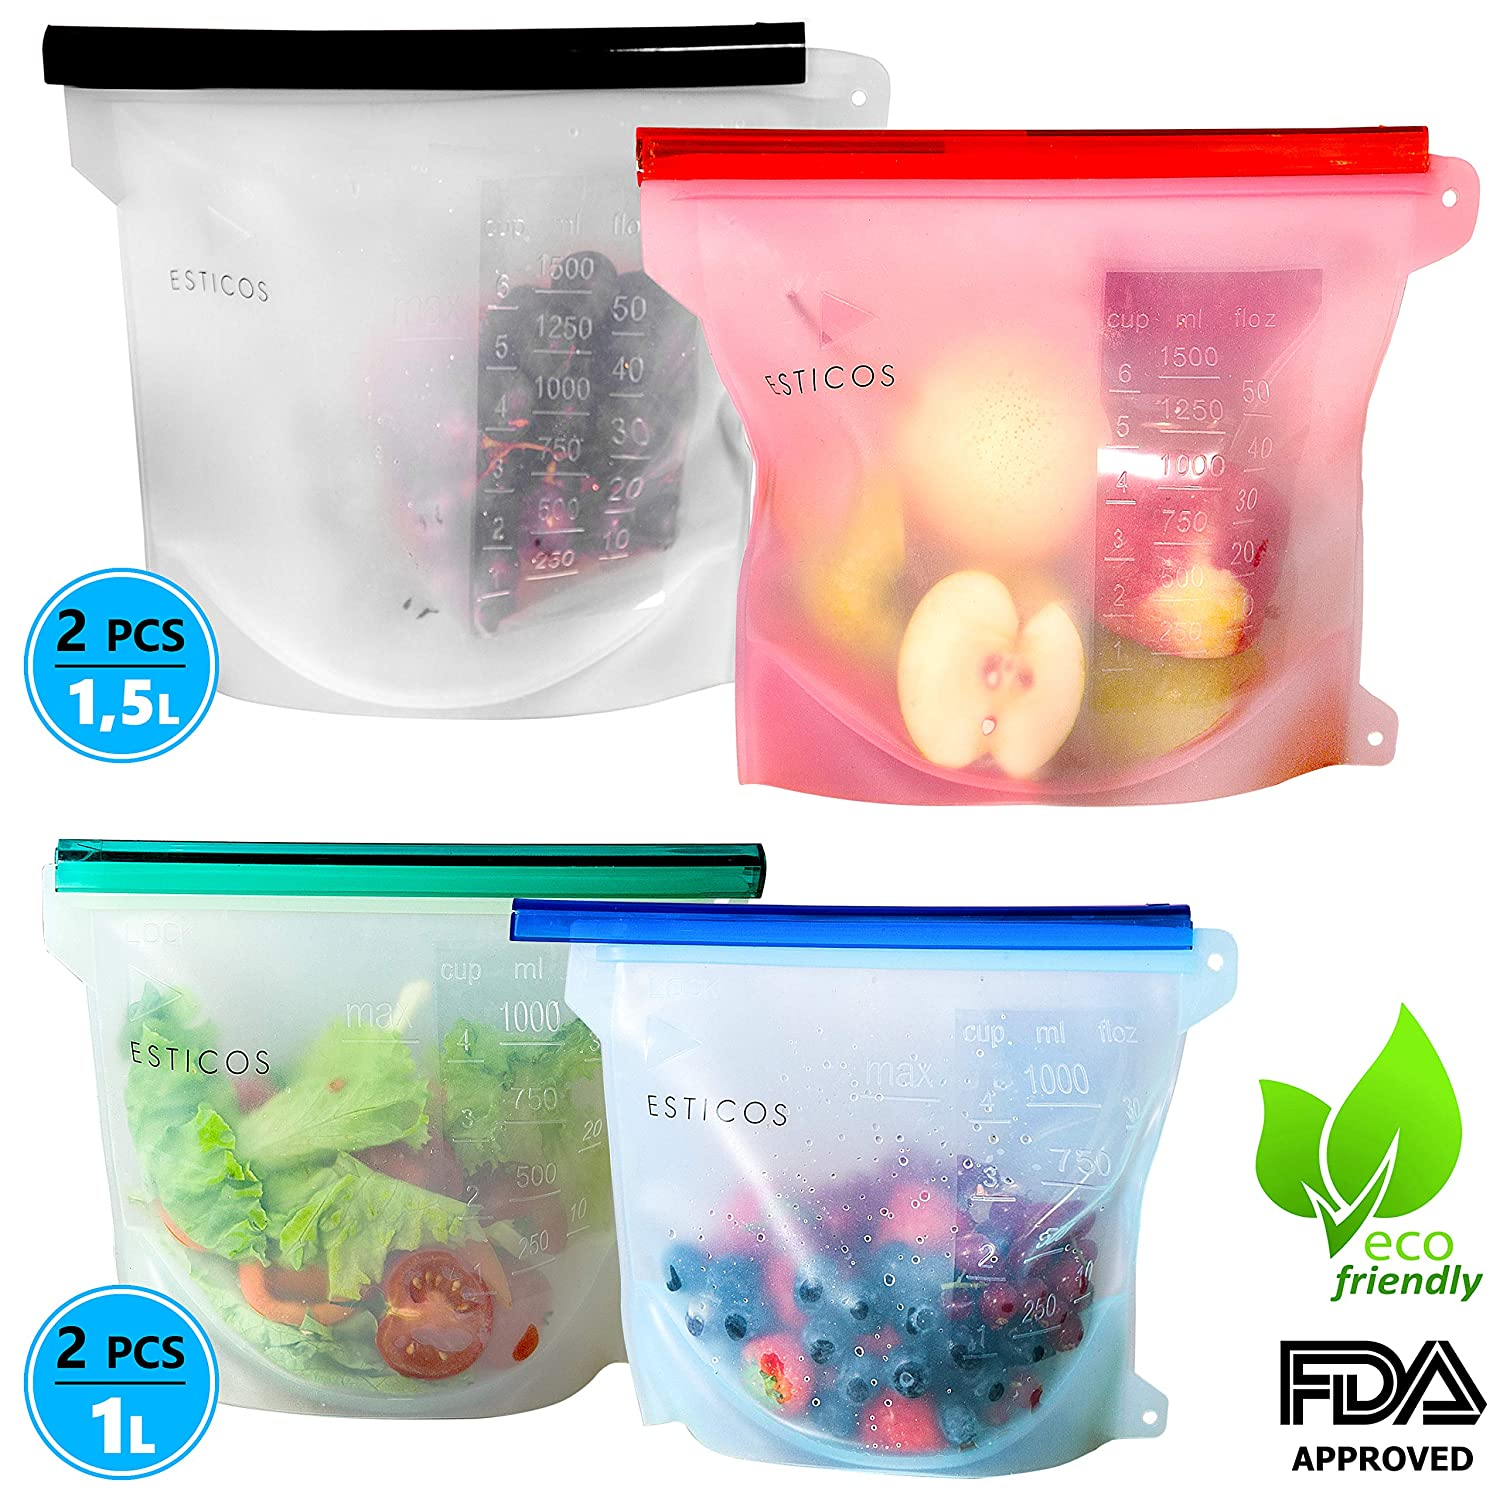 Reusable Silicone Food Storage Bags Set of 4, 50 oz Large (2) & 30 oz small (2), Sandwich Bag container Sous vide for Fruits Vegetables, Microwave Freezer Dishwasher Safe by Esticos